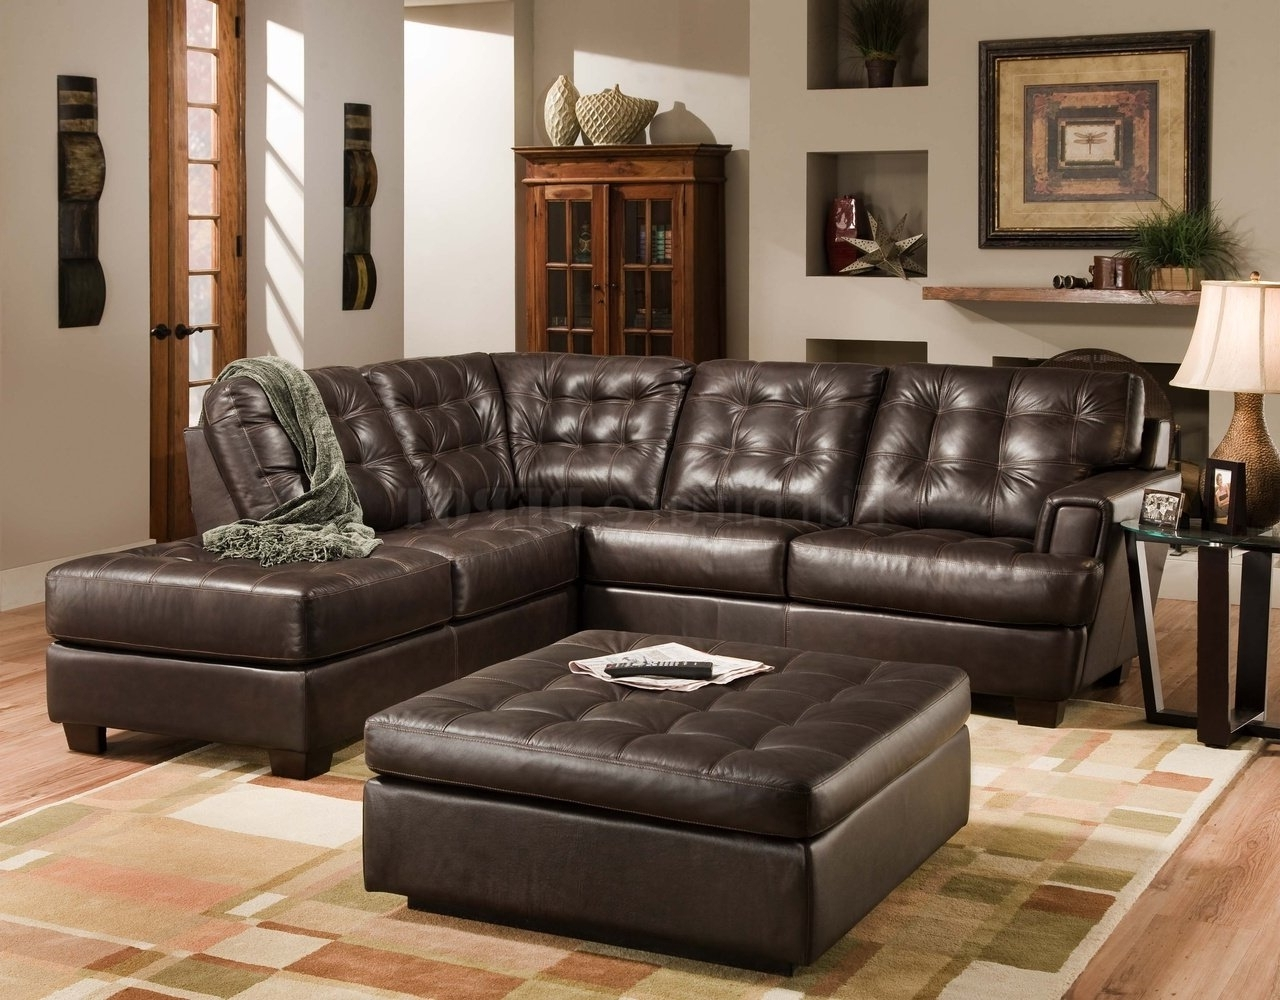 Emejing Brown Leather Sectional With Chaise Photos – Liltigertoo Inside Favorite Leather Sectionals With Chaise Lounge (View 13 of 15)